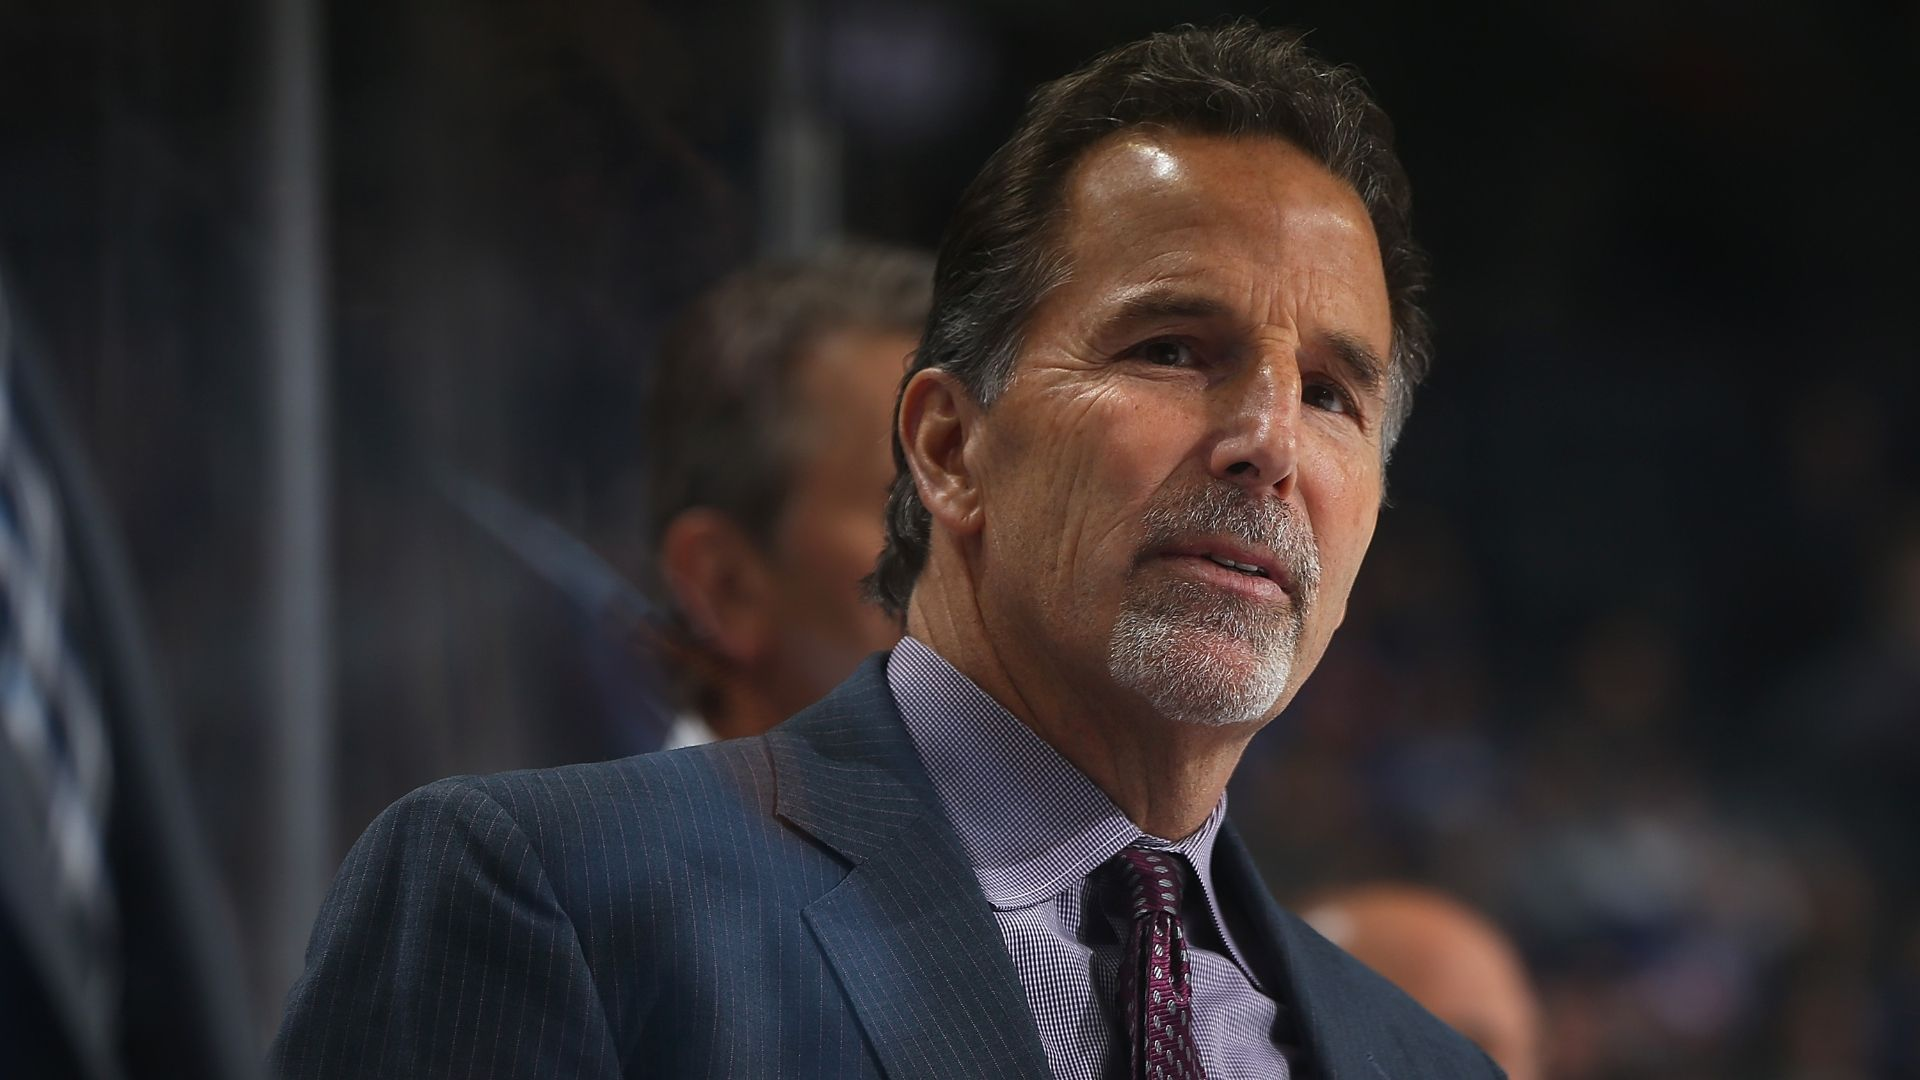 https://secure.espncdn.com/combiner/i?img=/media/motion/2016/0907/dm_160907_john_tortorella_discussion/dm_160907_john_tortorella_discussion.jpg